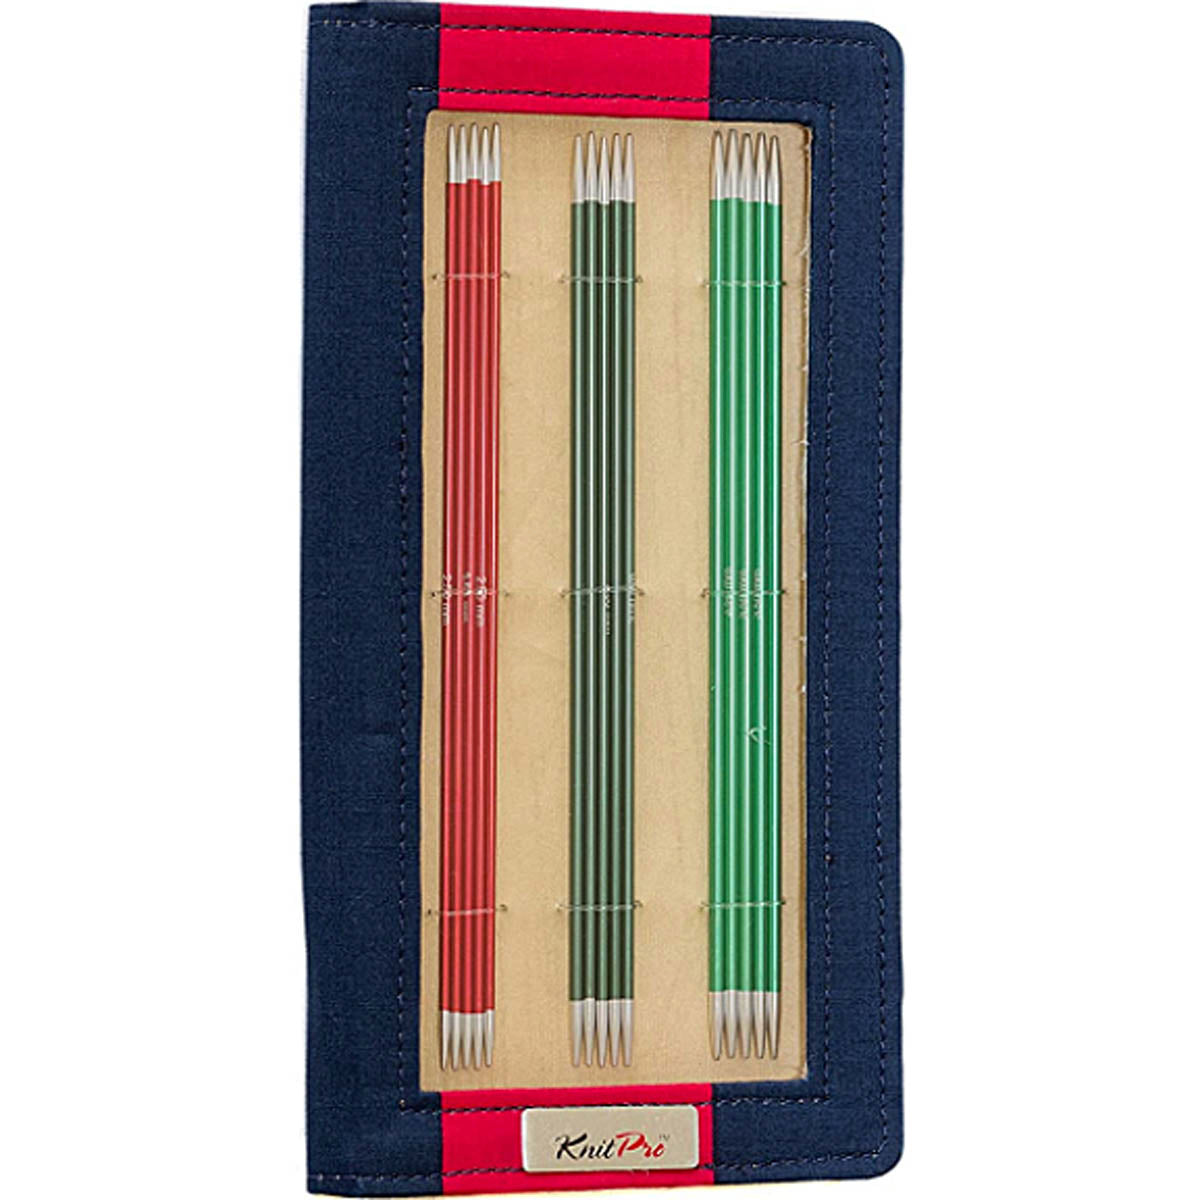 ZING Double Point Set of Knitting Needles 15cm or 20cm Short for Small Projects